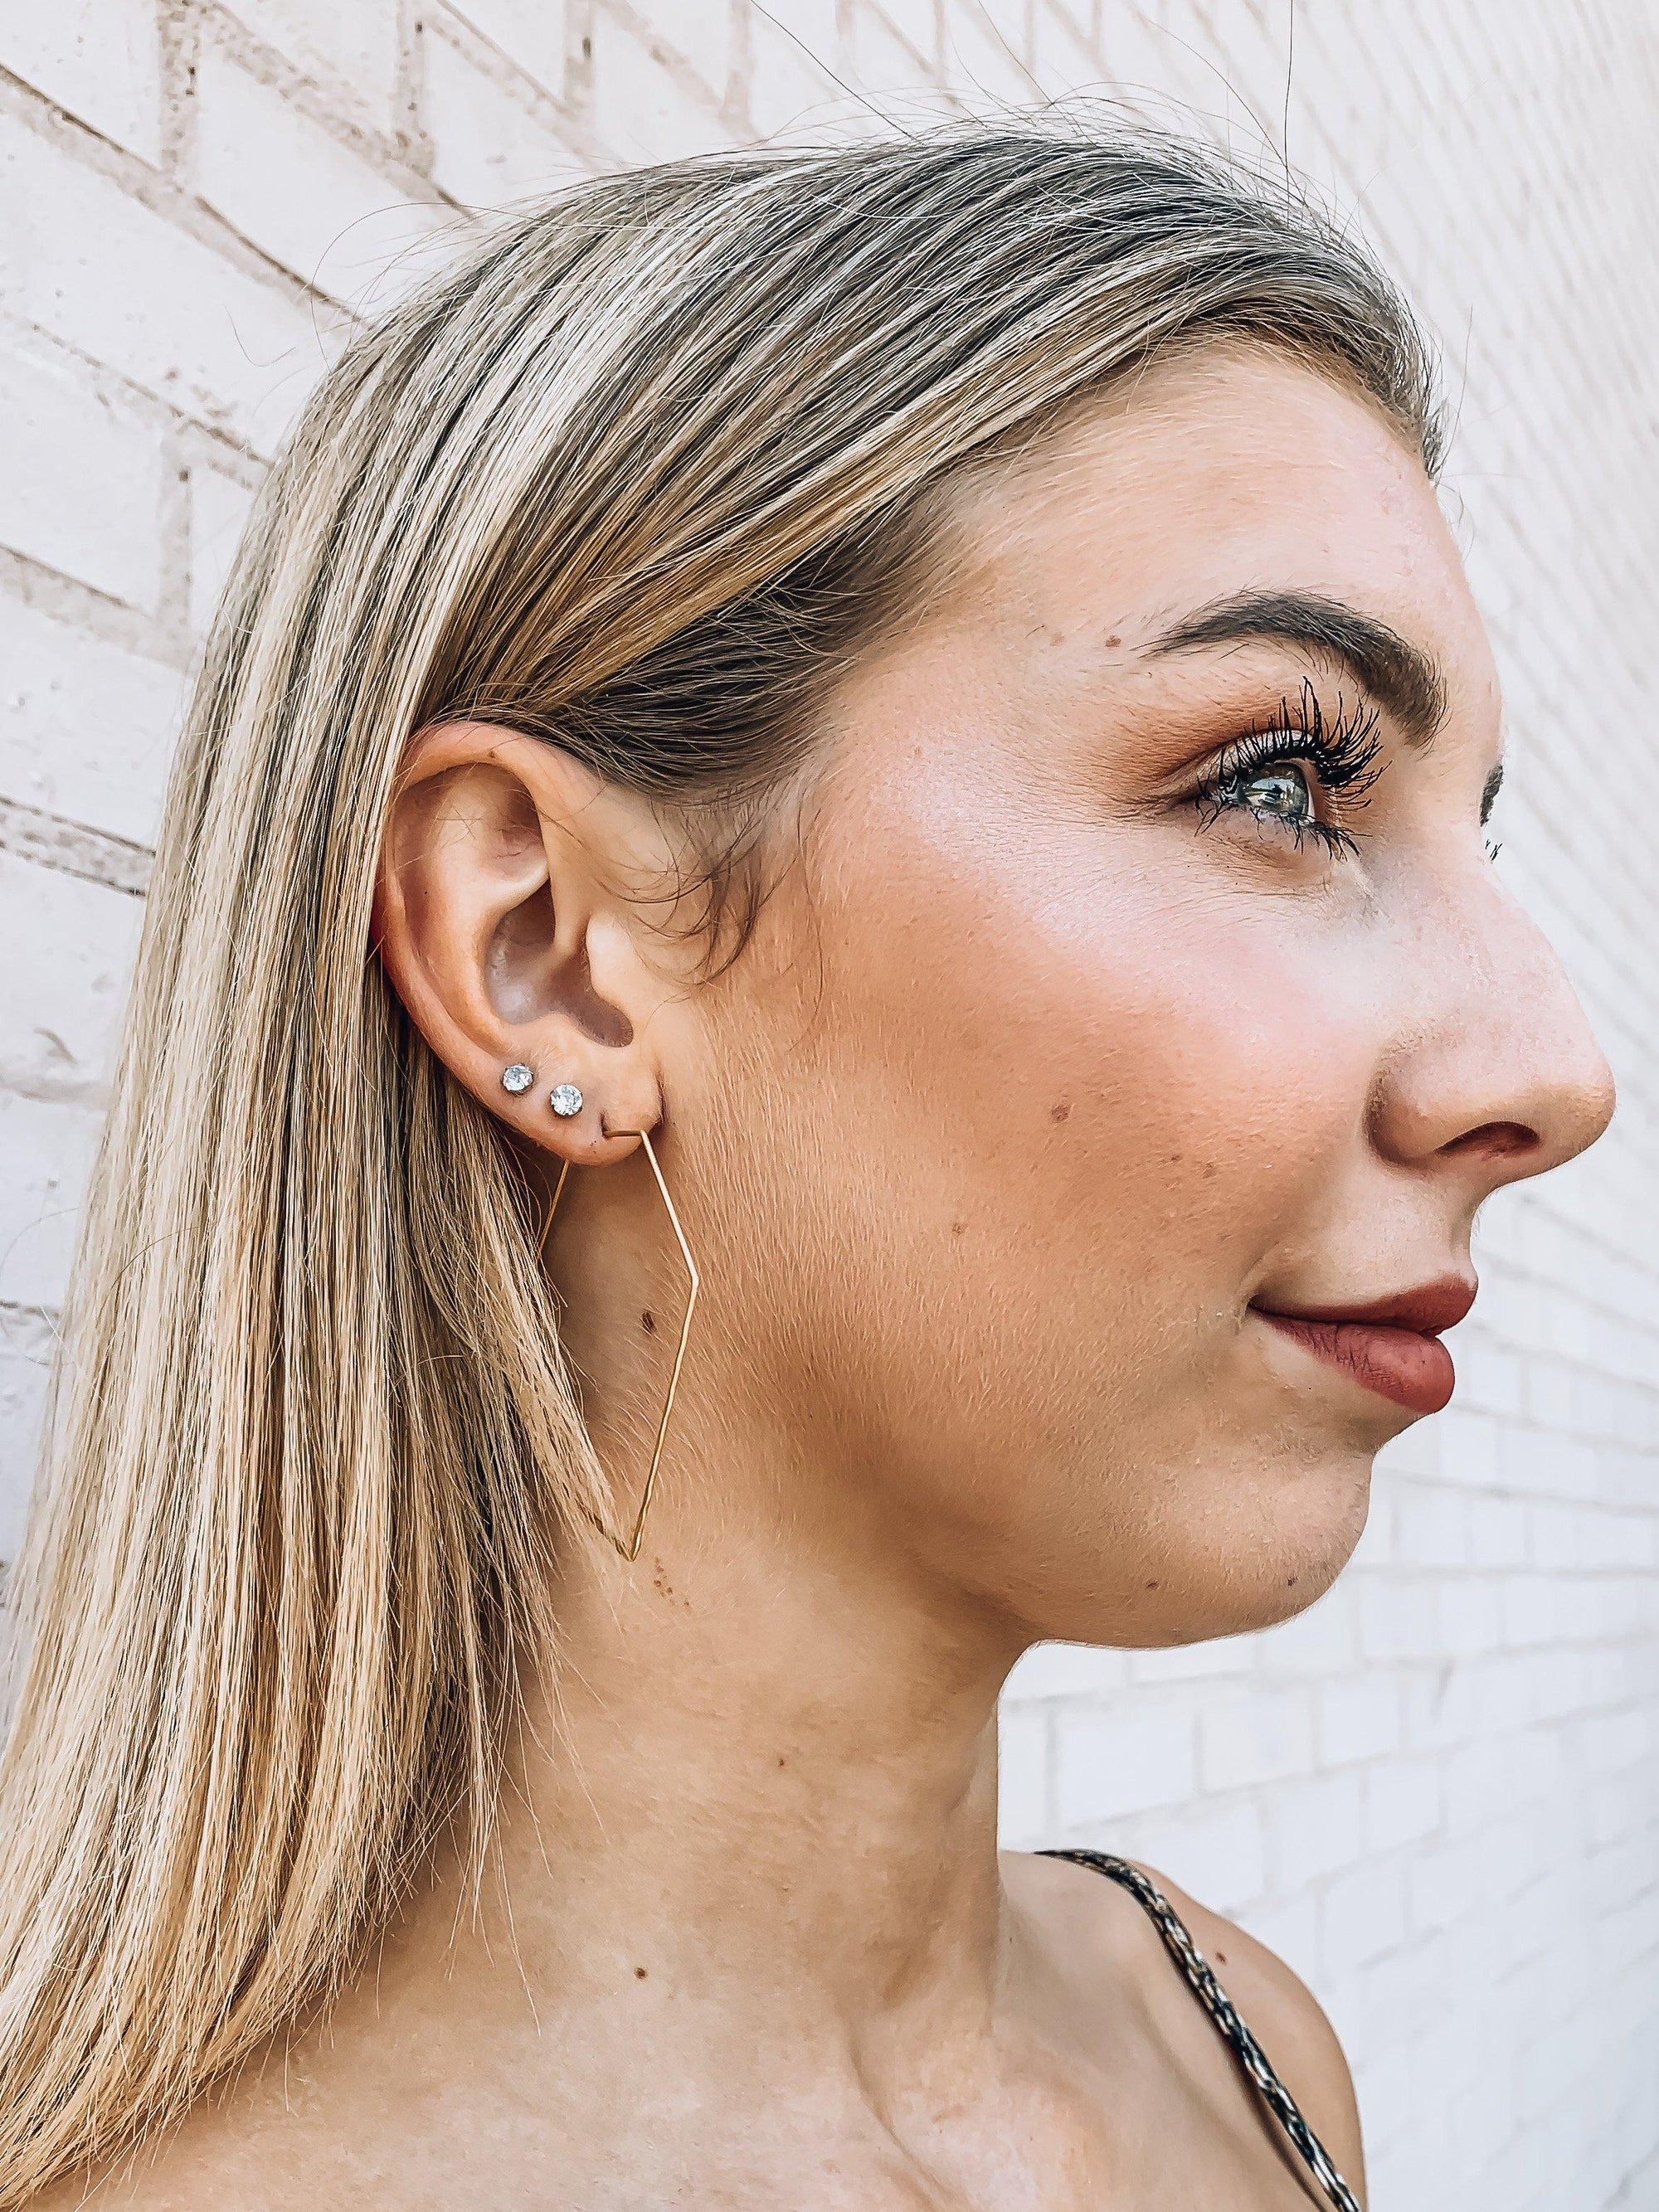 Blow Ya Mind Earrings-Women's ACCESSORIES-New Arrivals-Runway Seven